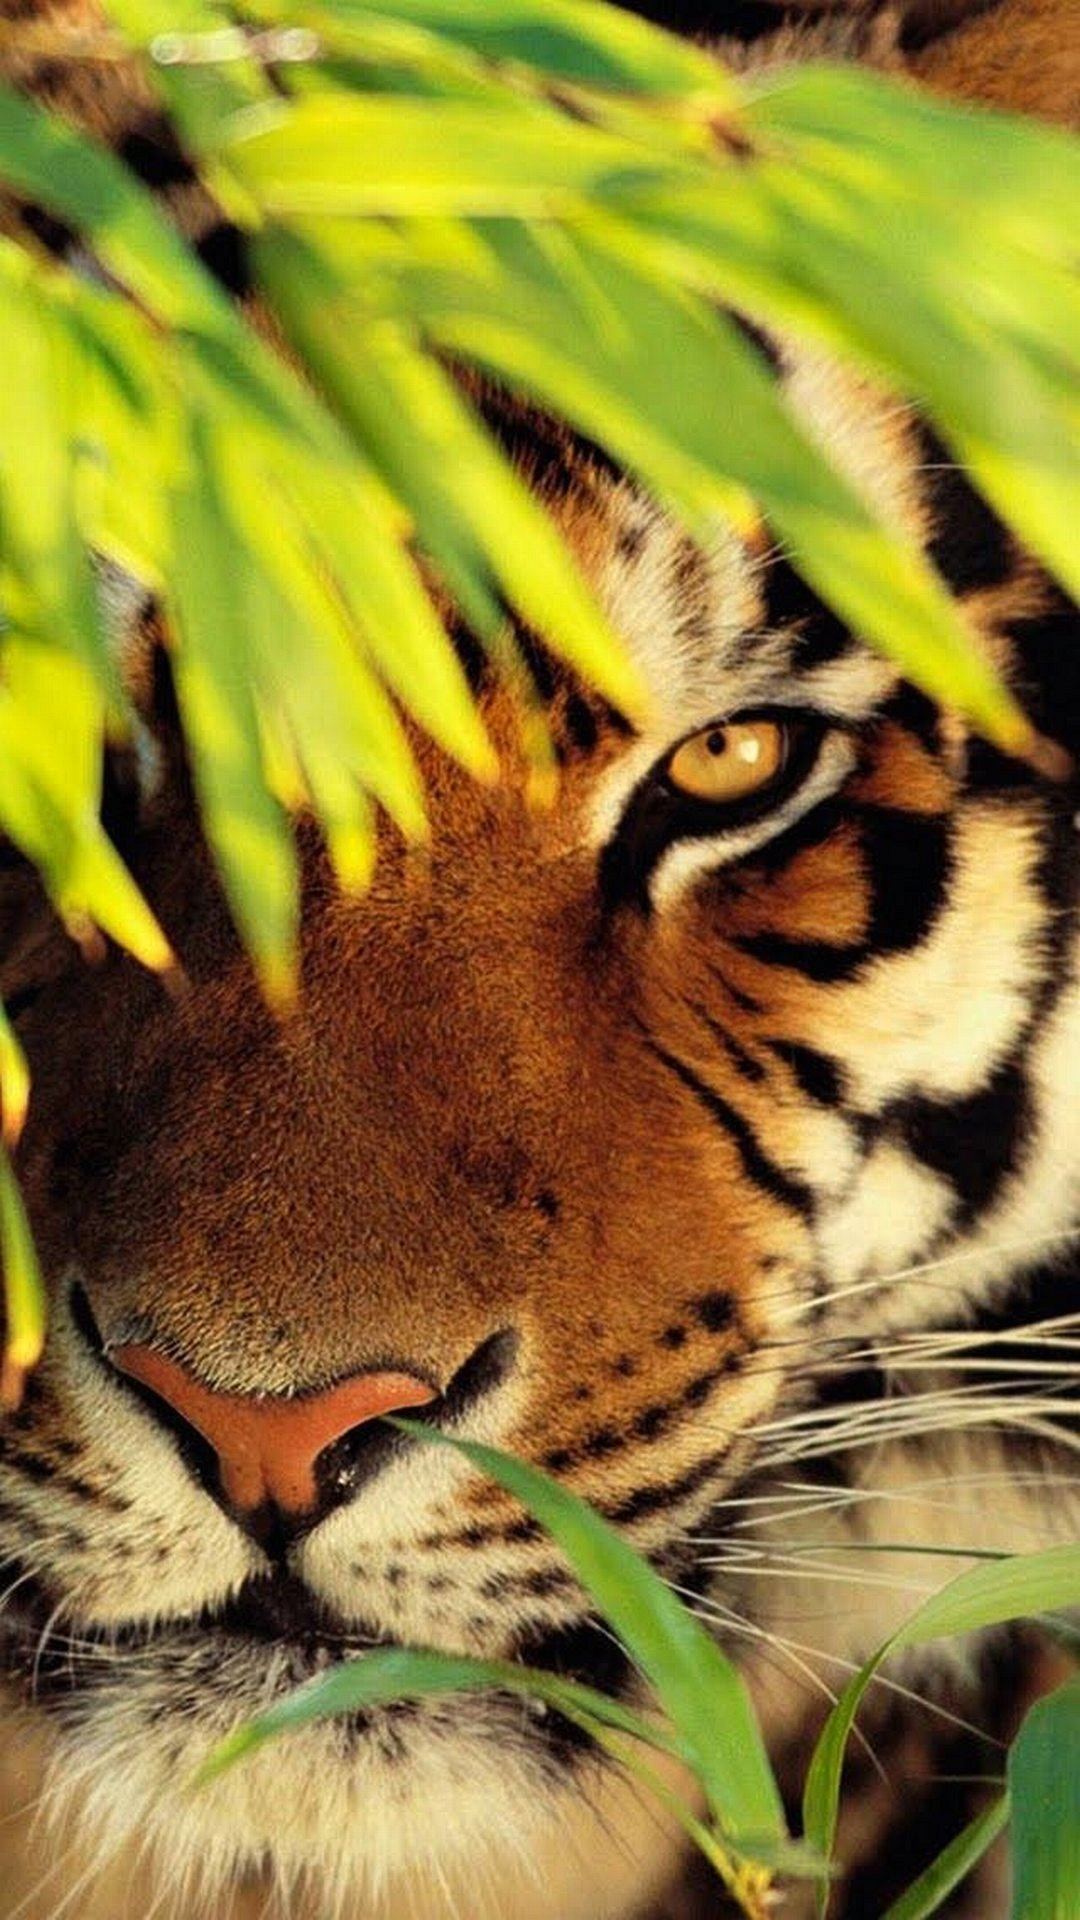 Animals Wallpapers Wallpaper Iphone 7 1080 1920 Full Hd